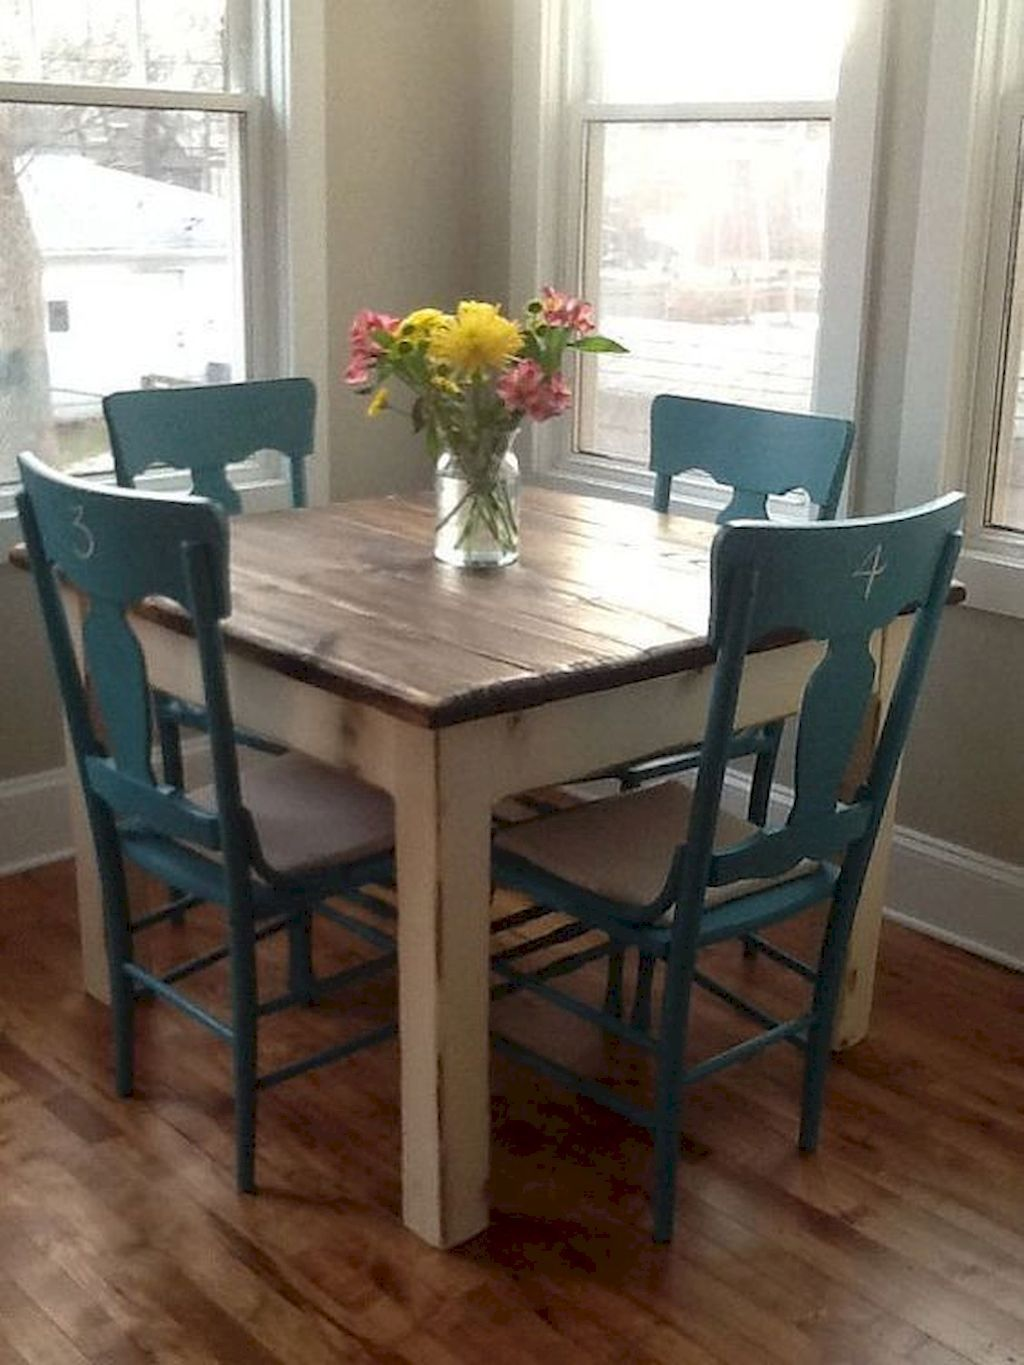 Adorable 80 Stunning Rustic Farmhouse Dining Room Set Furniture Ideas Https Carribeanpi Rustic Farmhouse Table Small Kitchen Tables Farmhouse Kitchen Tables